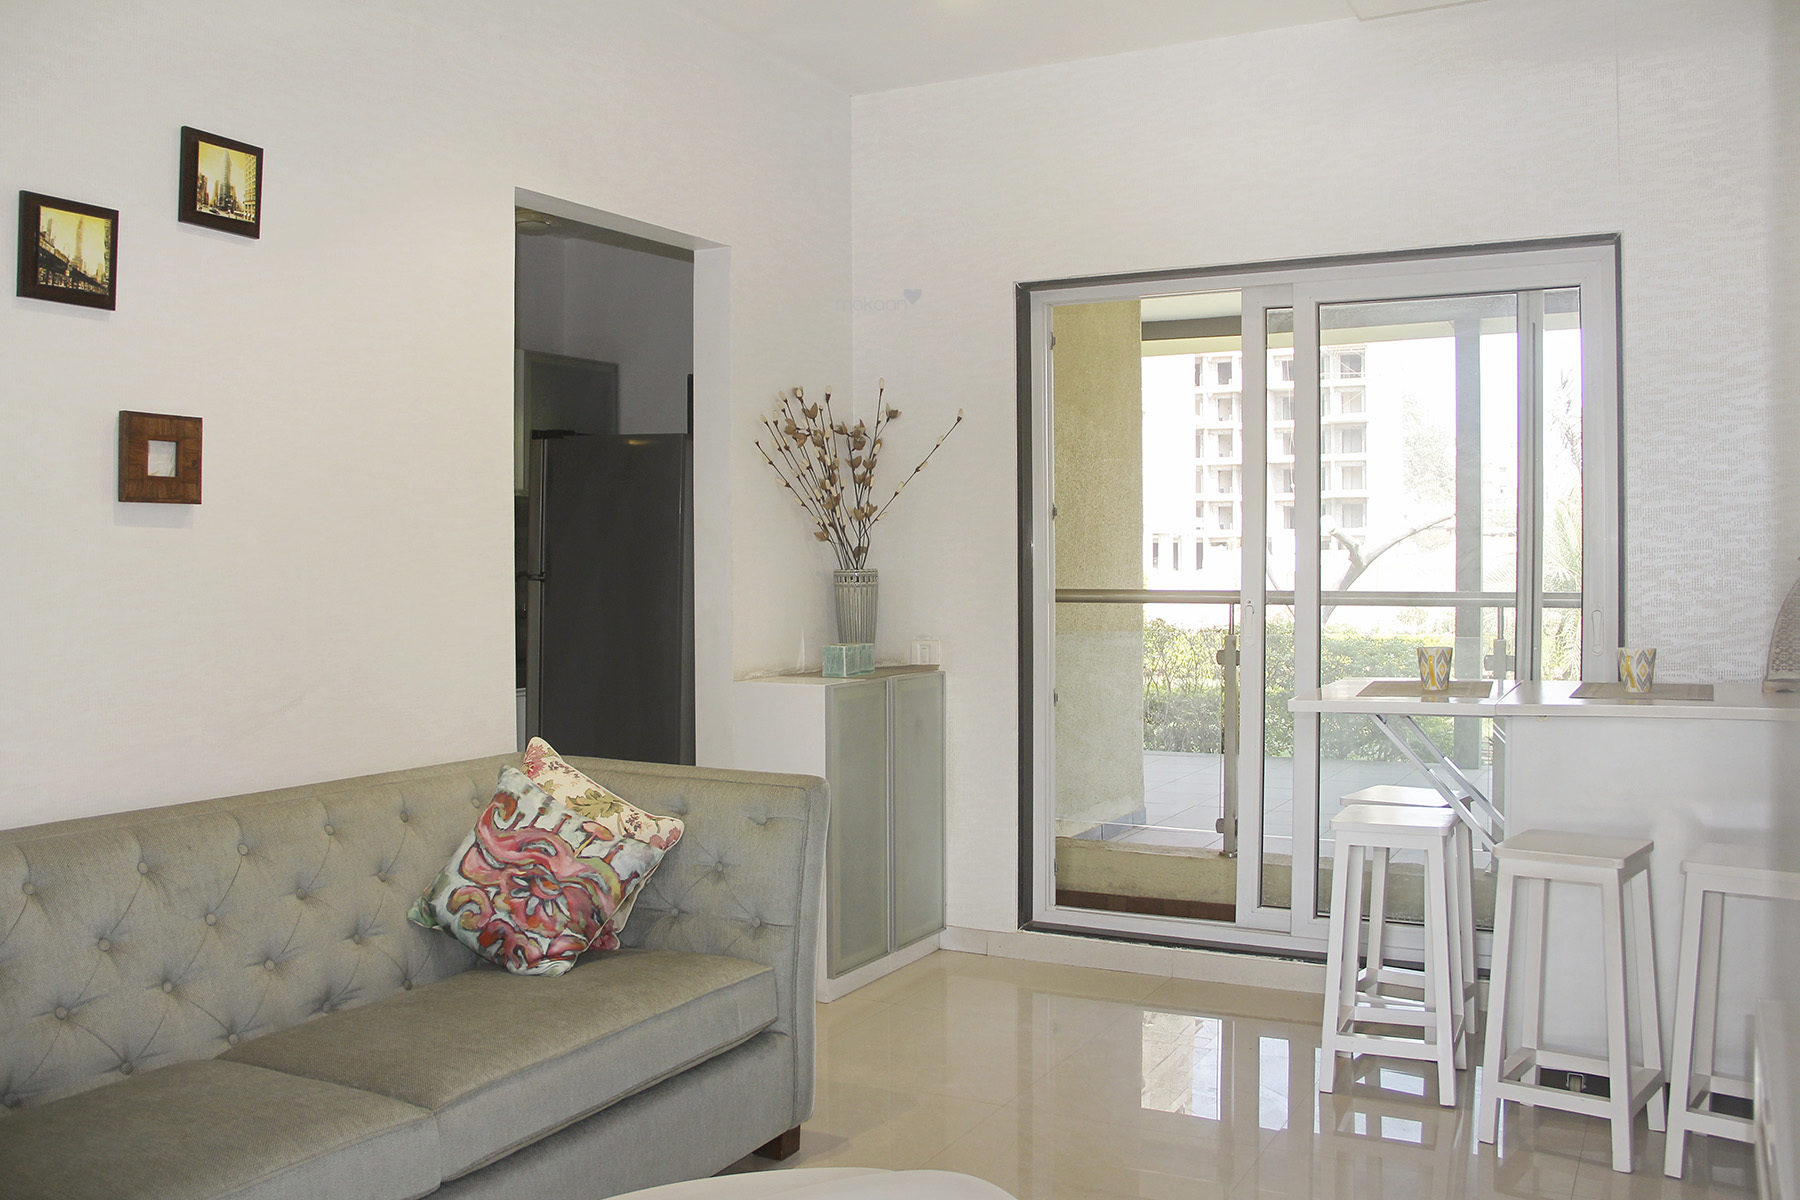 650 sq ft 1BHK 1BHK+1T (650 sq ft) Property By Proptiger In Leisure Town, Hadapsar